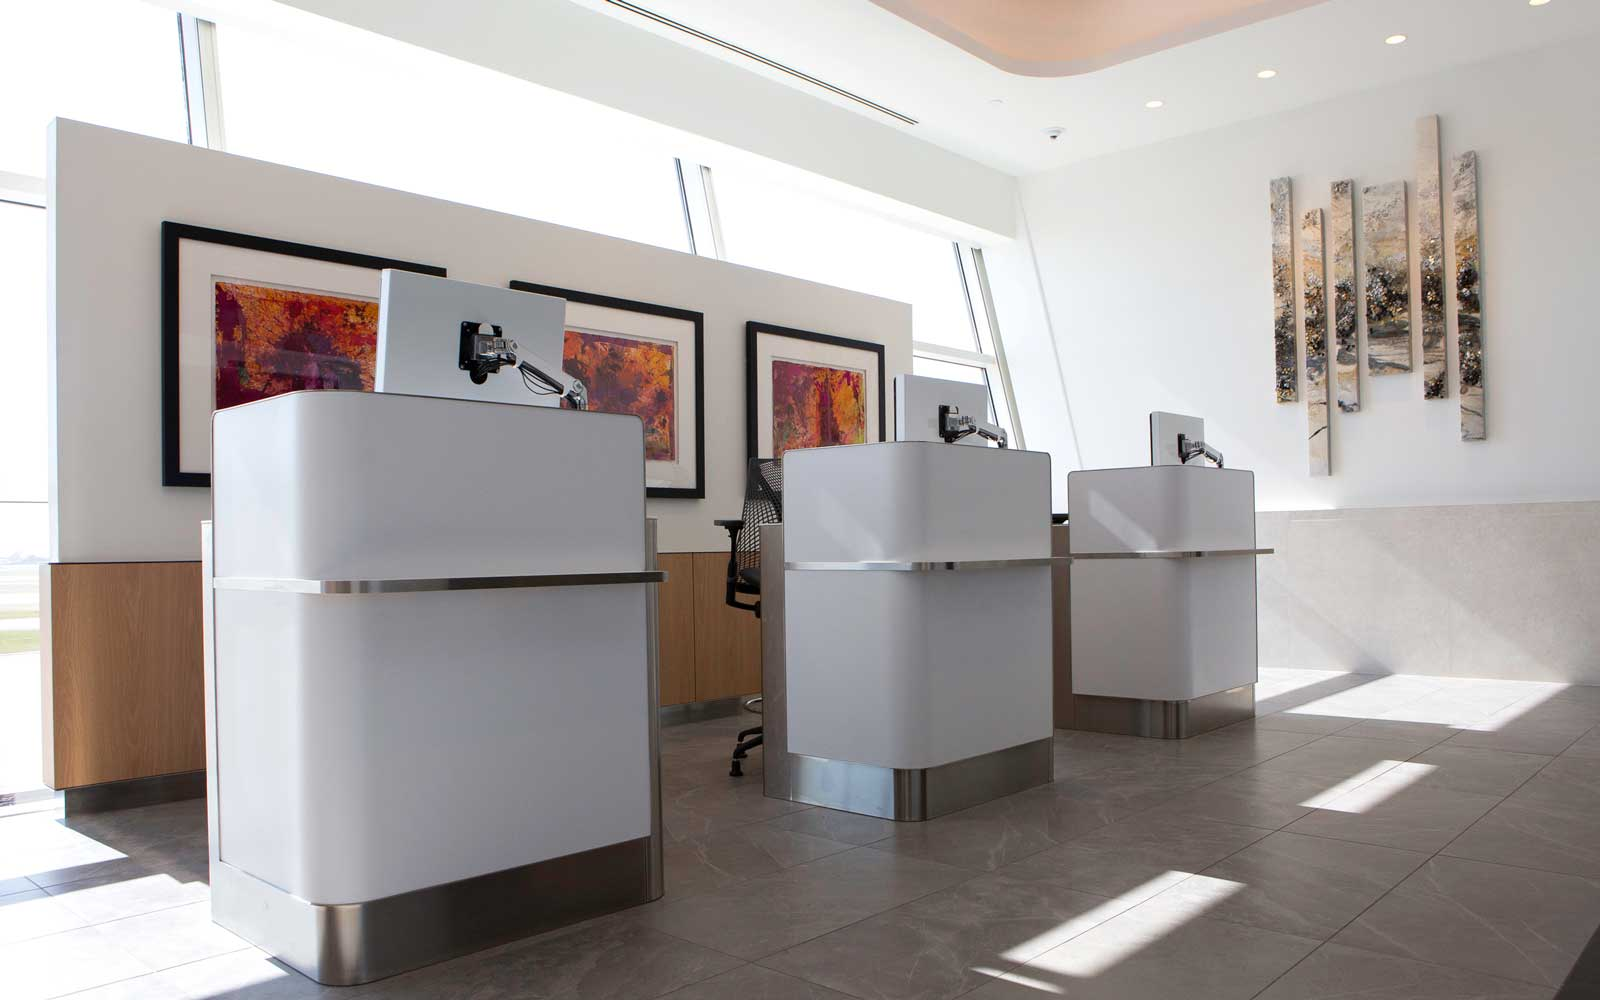 New American Airlines Flagship Lounge at DFW Airport